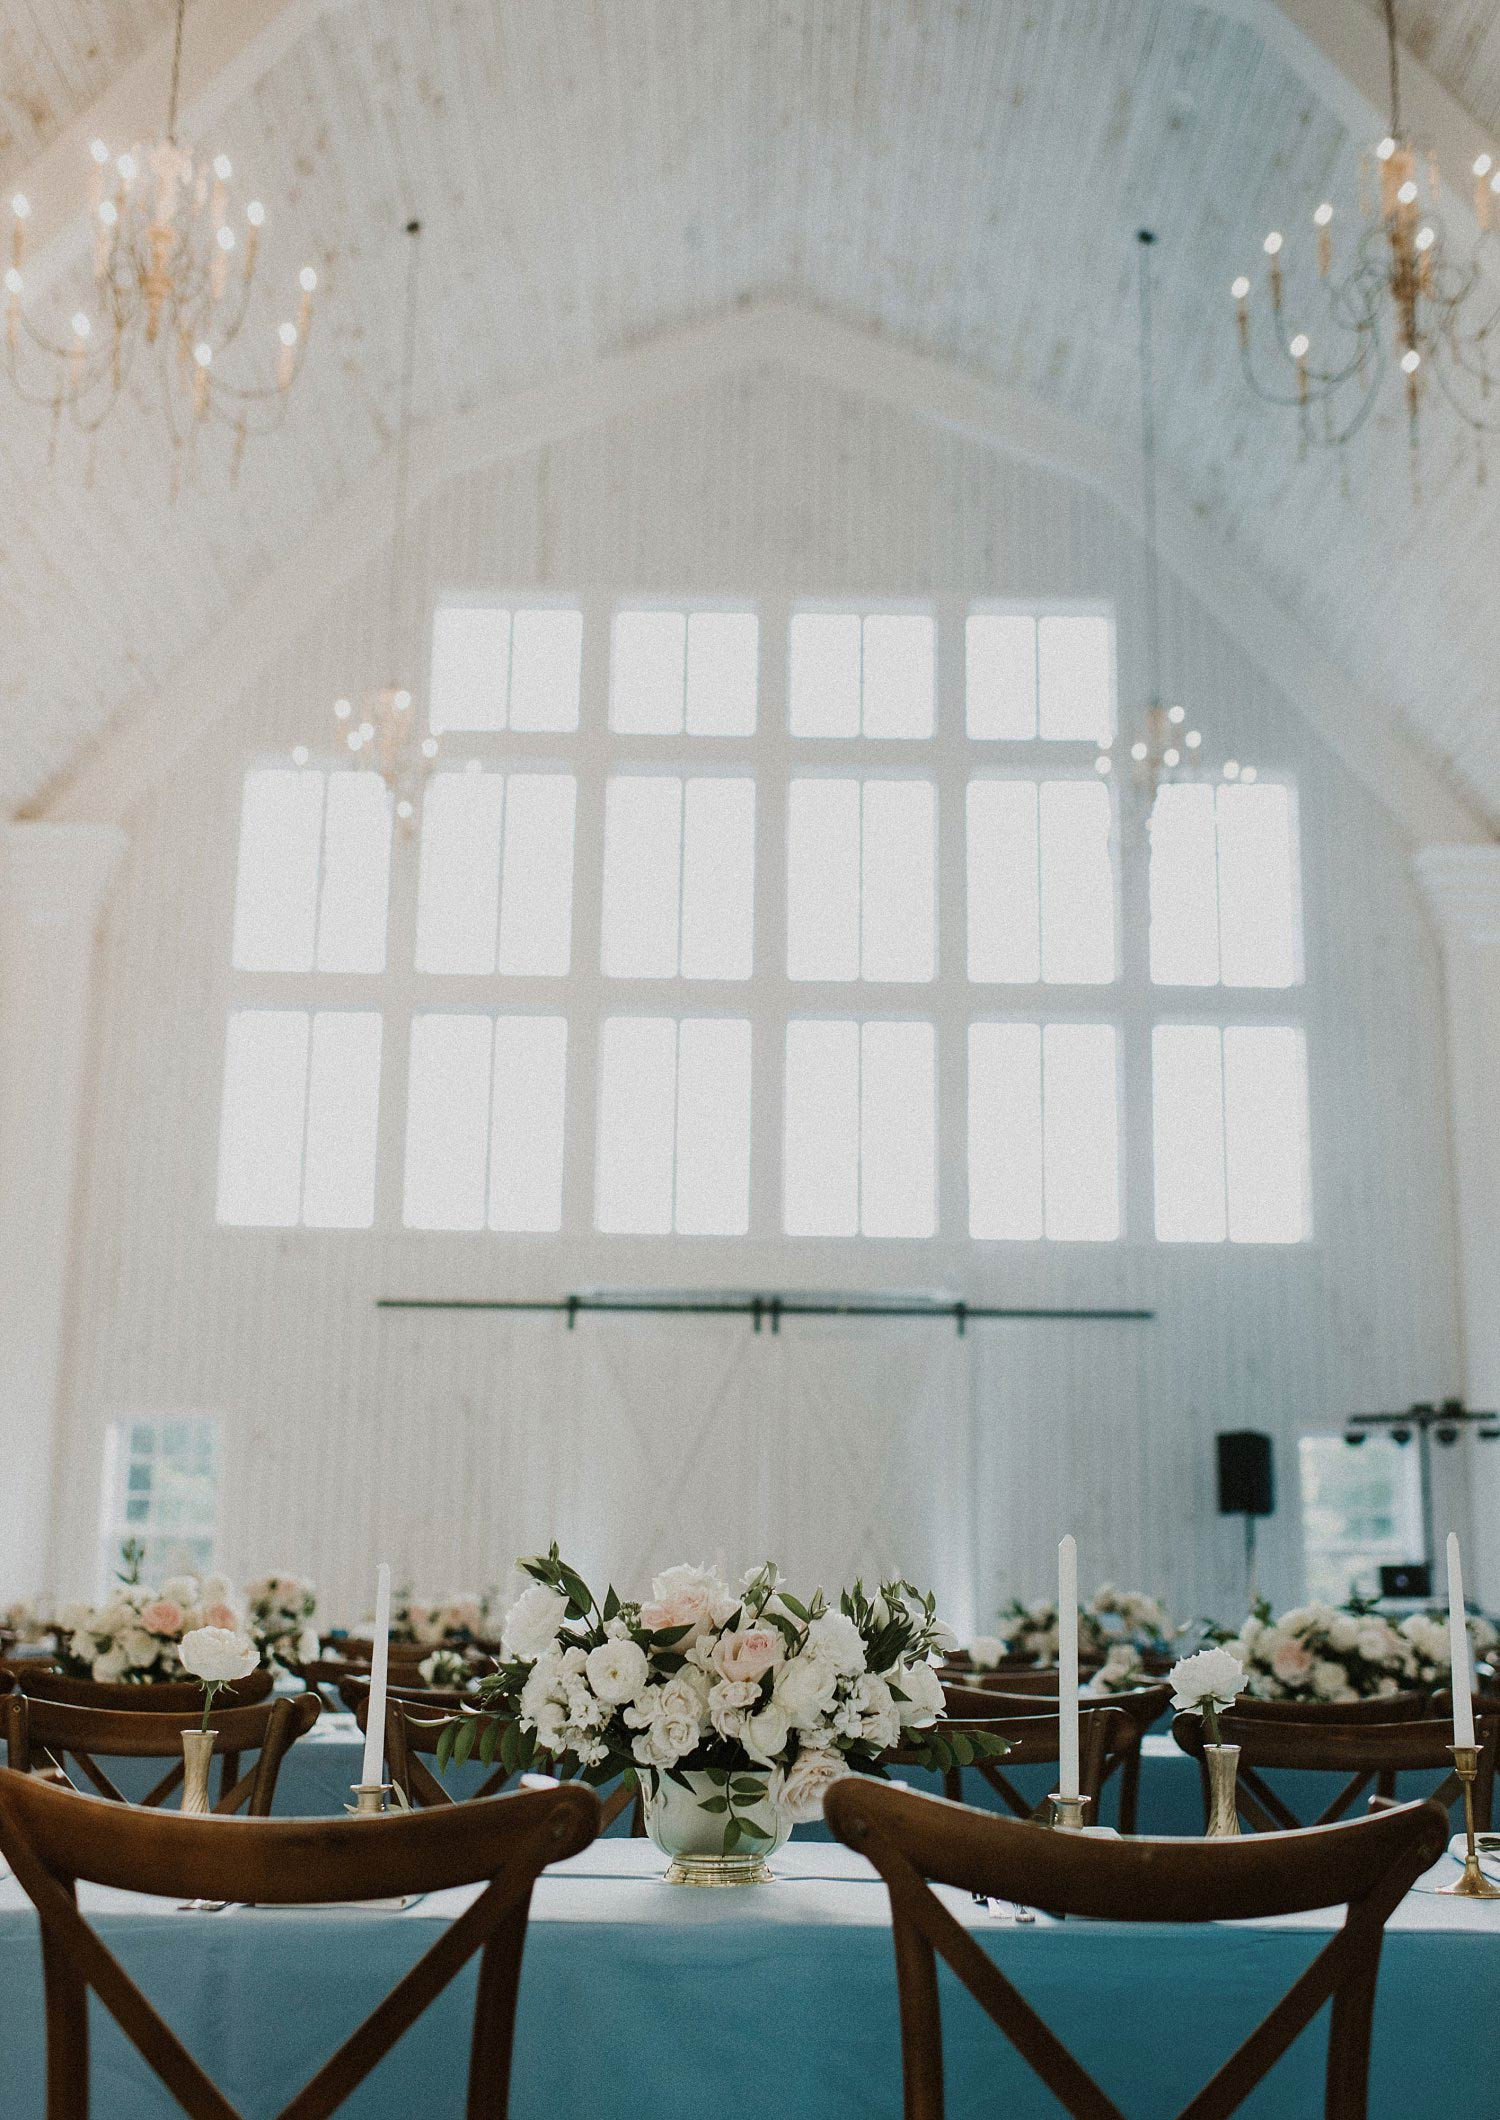 White Sparrow Barn wedding reception dusty blue linens and white and blush flowers in gold vase